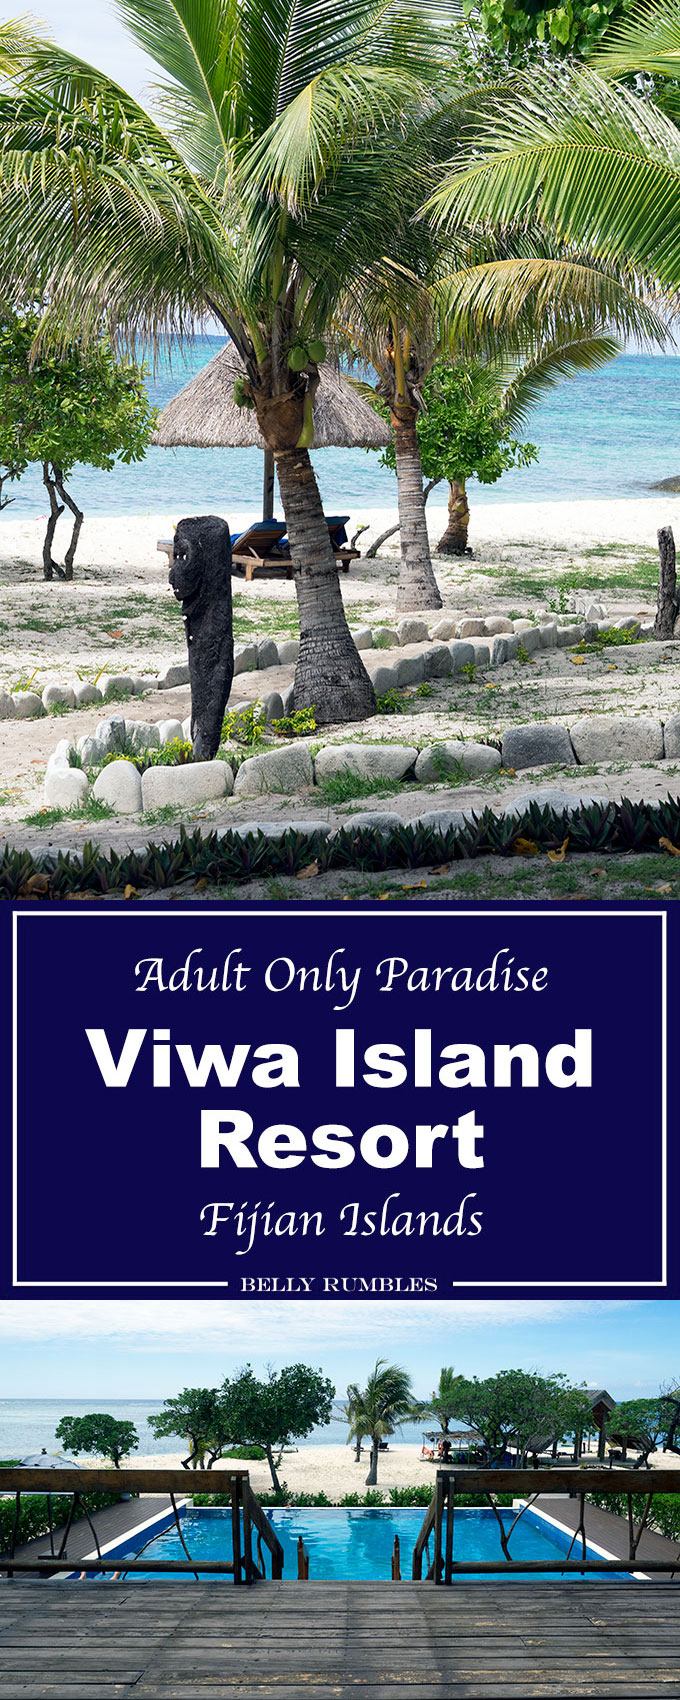 Viwa Island Resort. An adult only resort located in the Yasawa Islands, Fiji